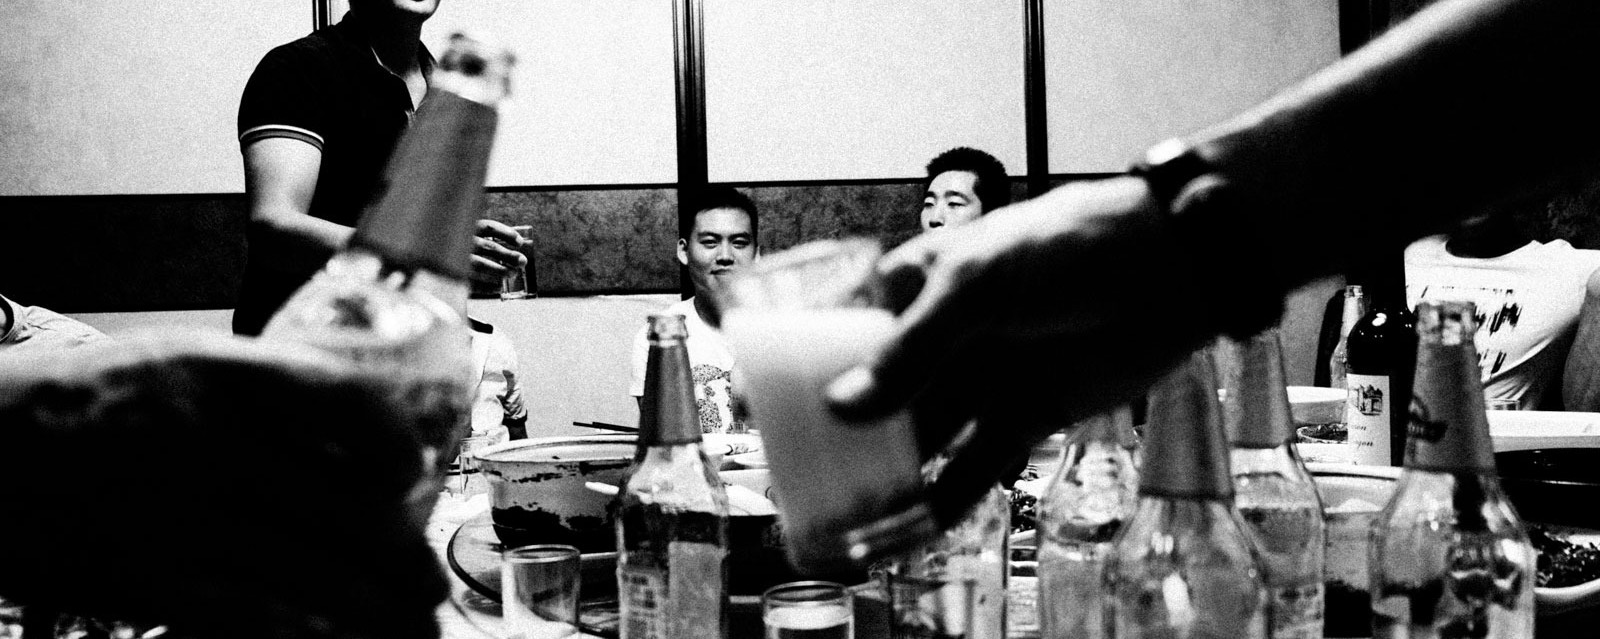 Booze, Sex, and the Dark Art of Dealmaking in China